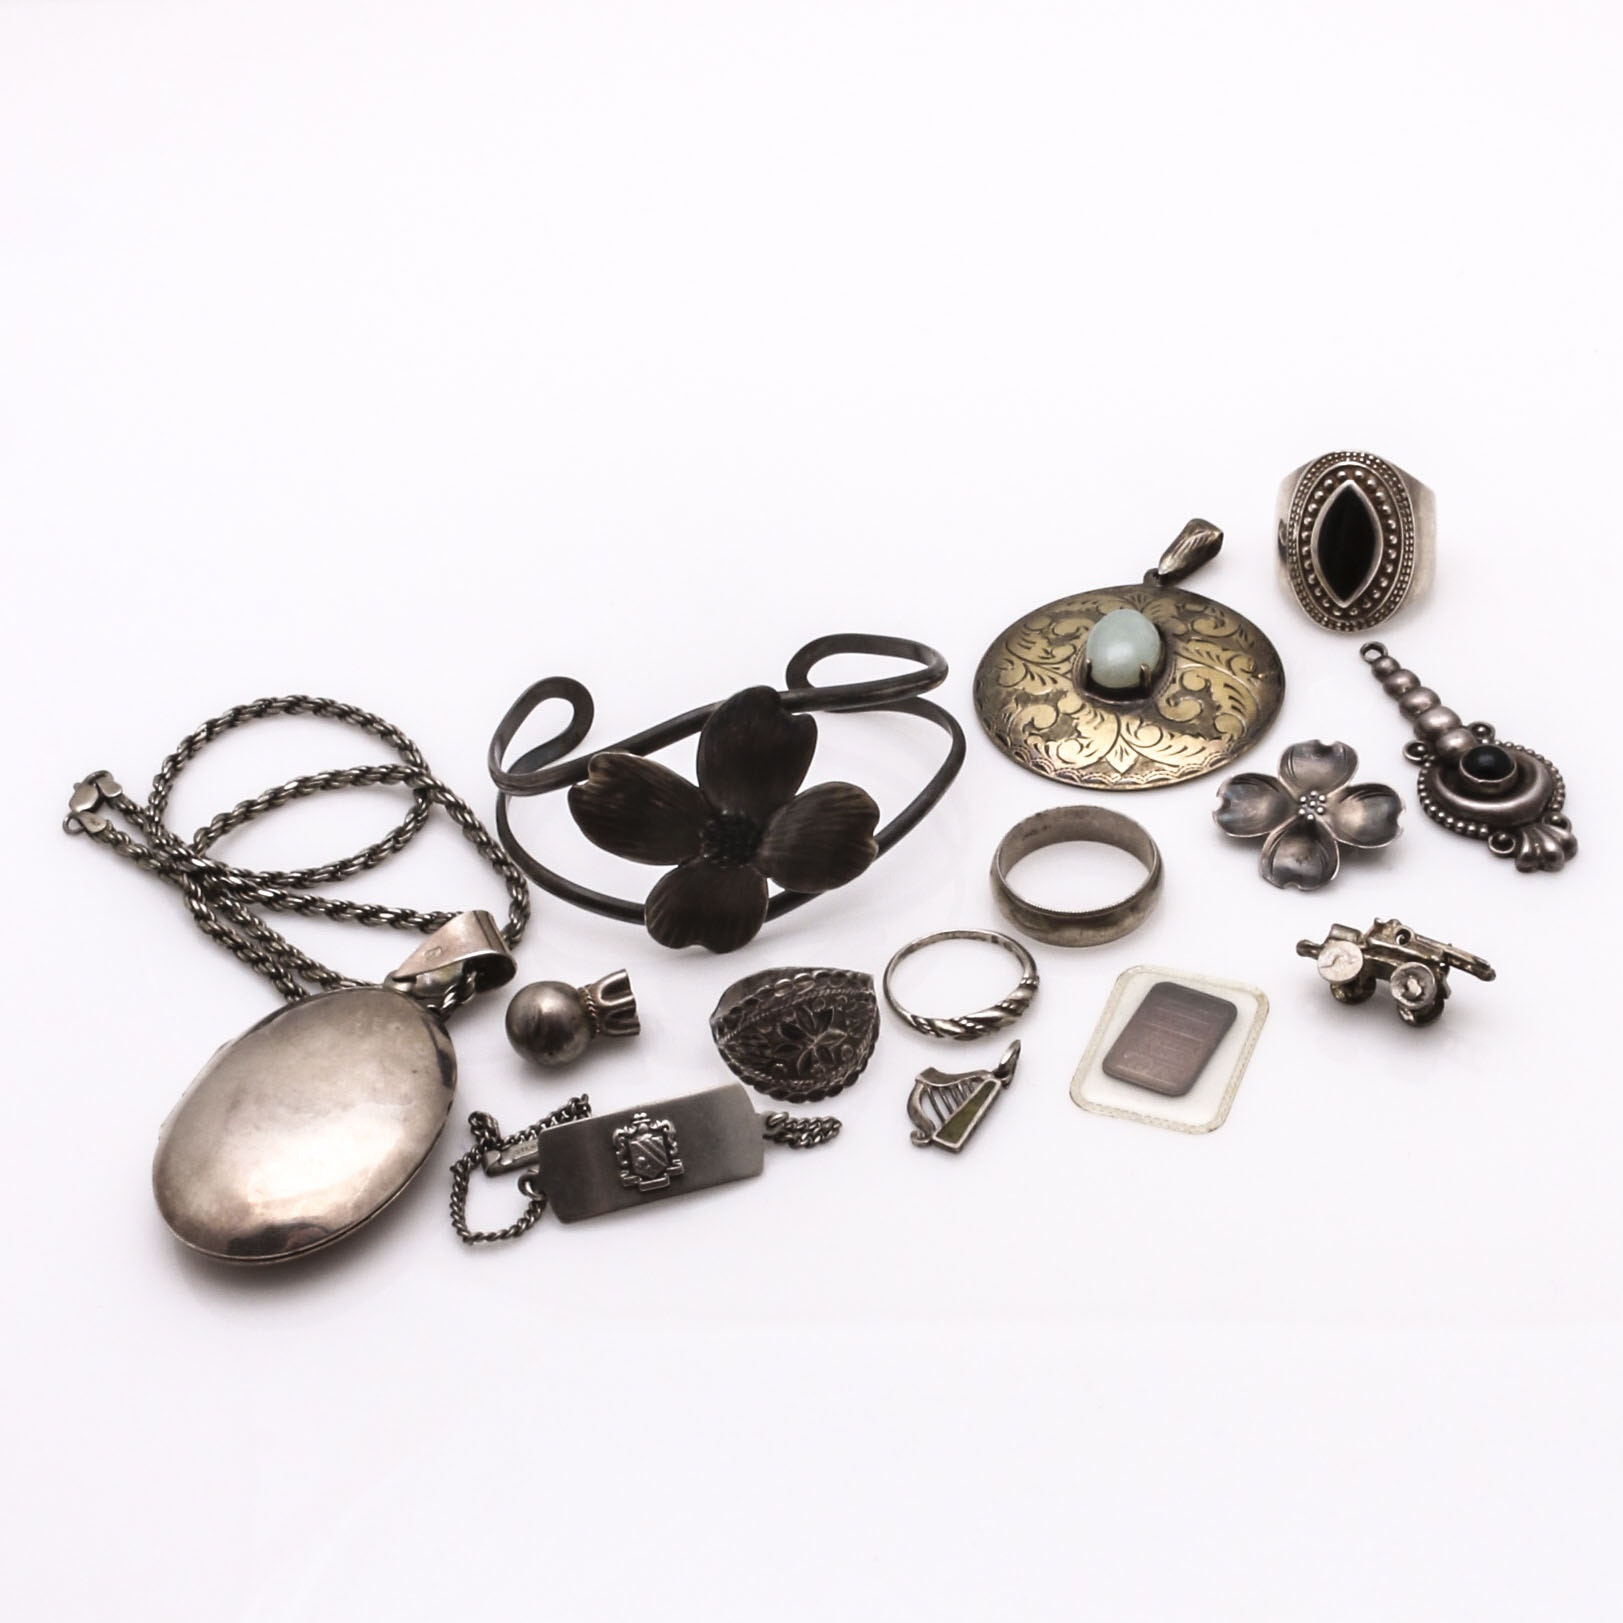 Assortment of Sterling Silver Jewelry